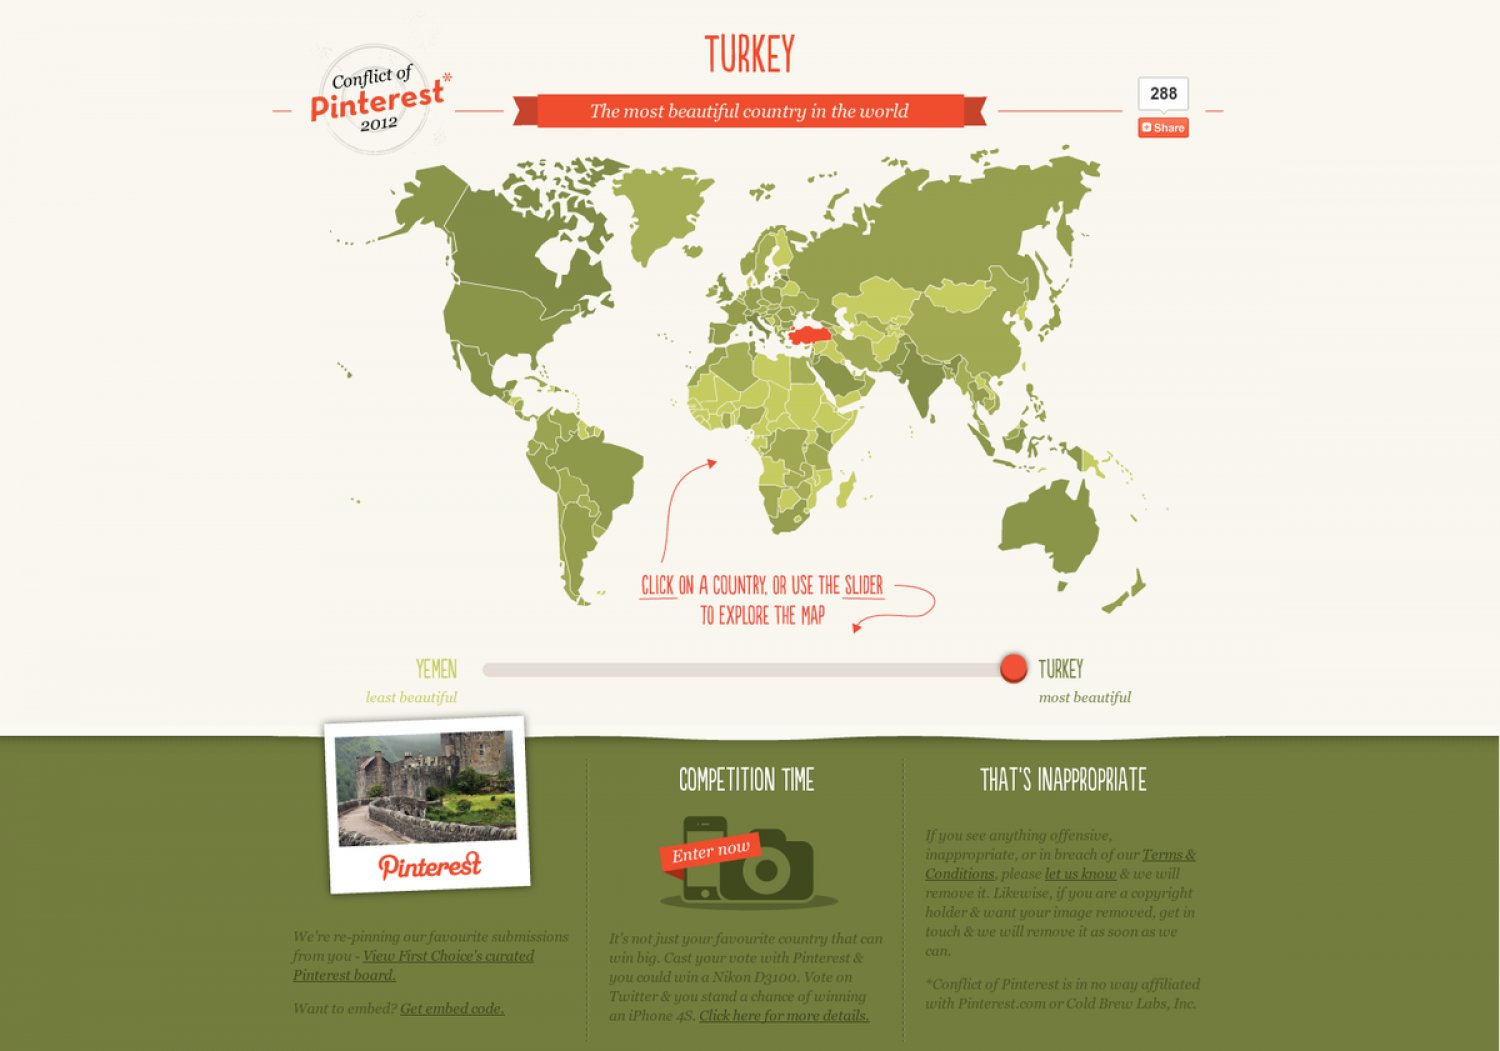 The Most Beautiful Country in the World Infographic